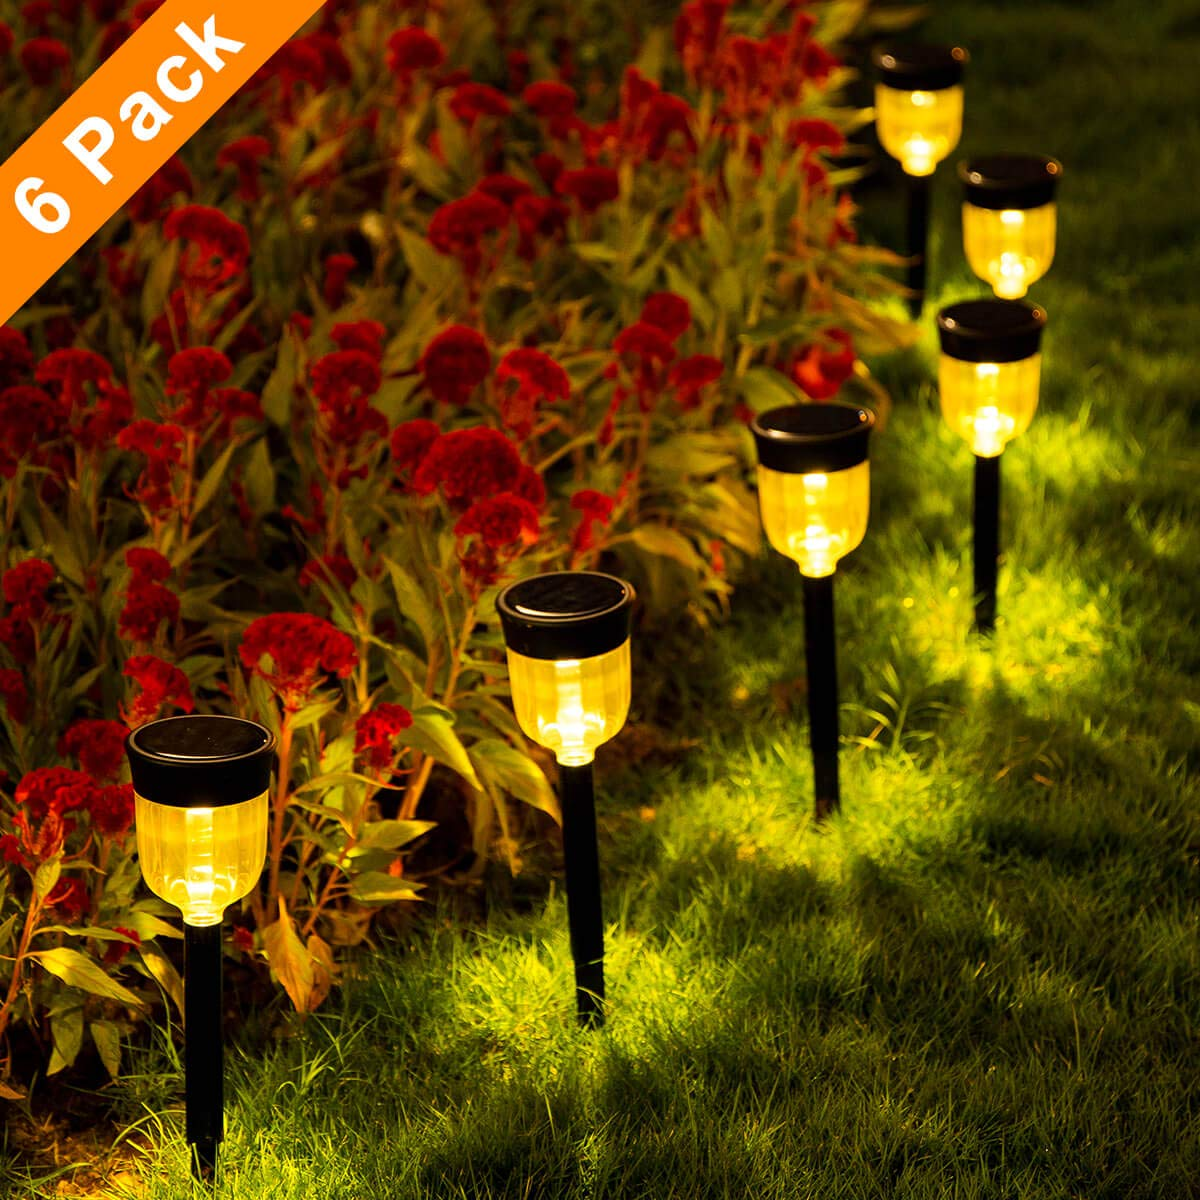 SMY Solar Pathway Lights,6 Pack Solar Outdoor Lights,Garden Lights Outdoor Landscape Lighting for Lawn,Yard,Patio, Pathway,Walkway,Warm White